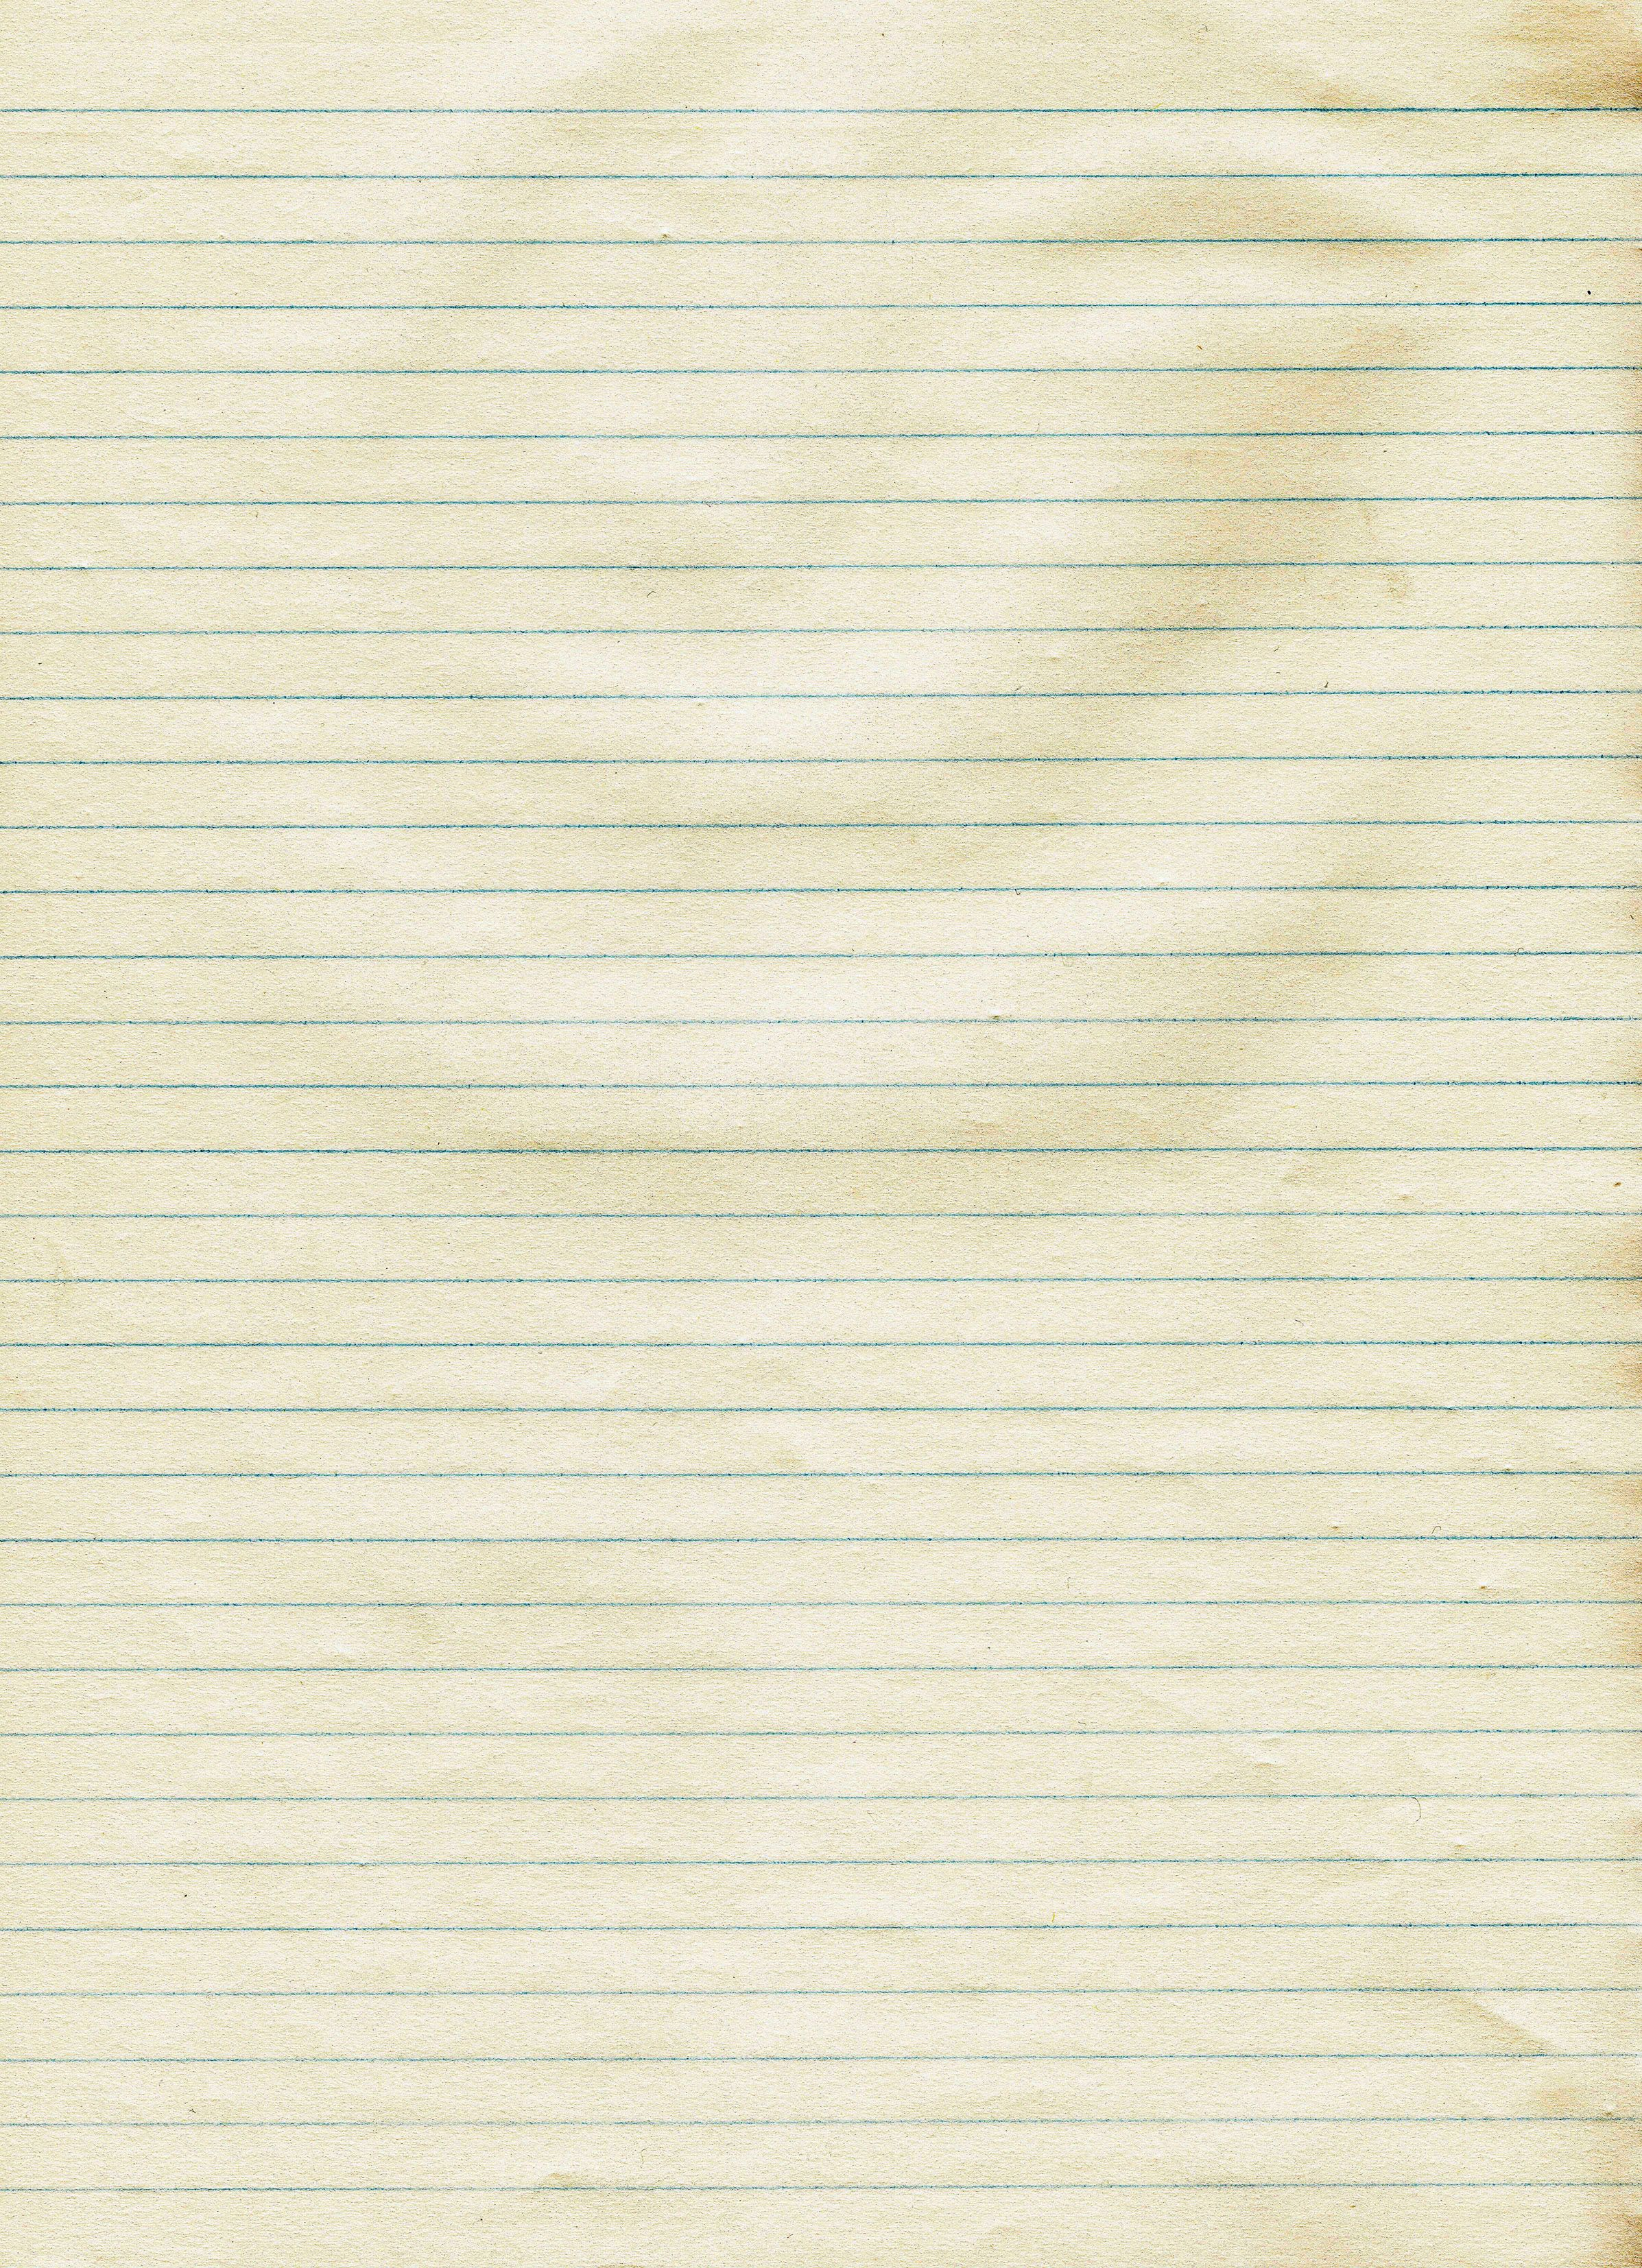 lined paper by ll-stock.deviantart on @deviantart | paper